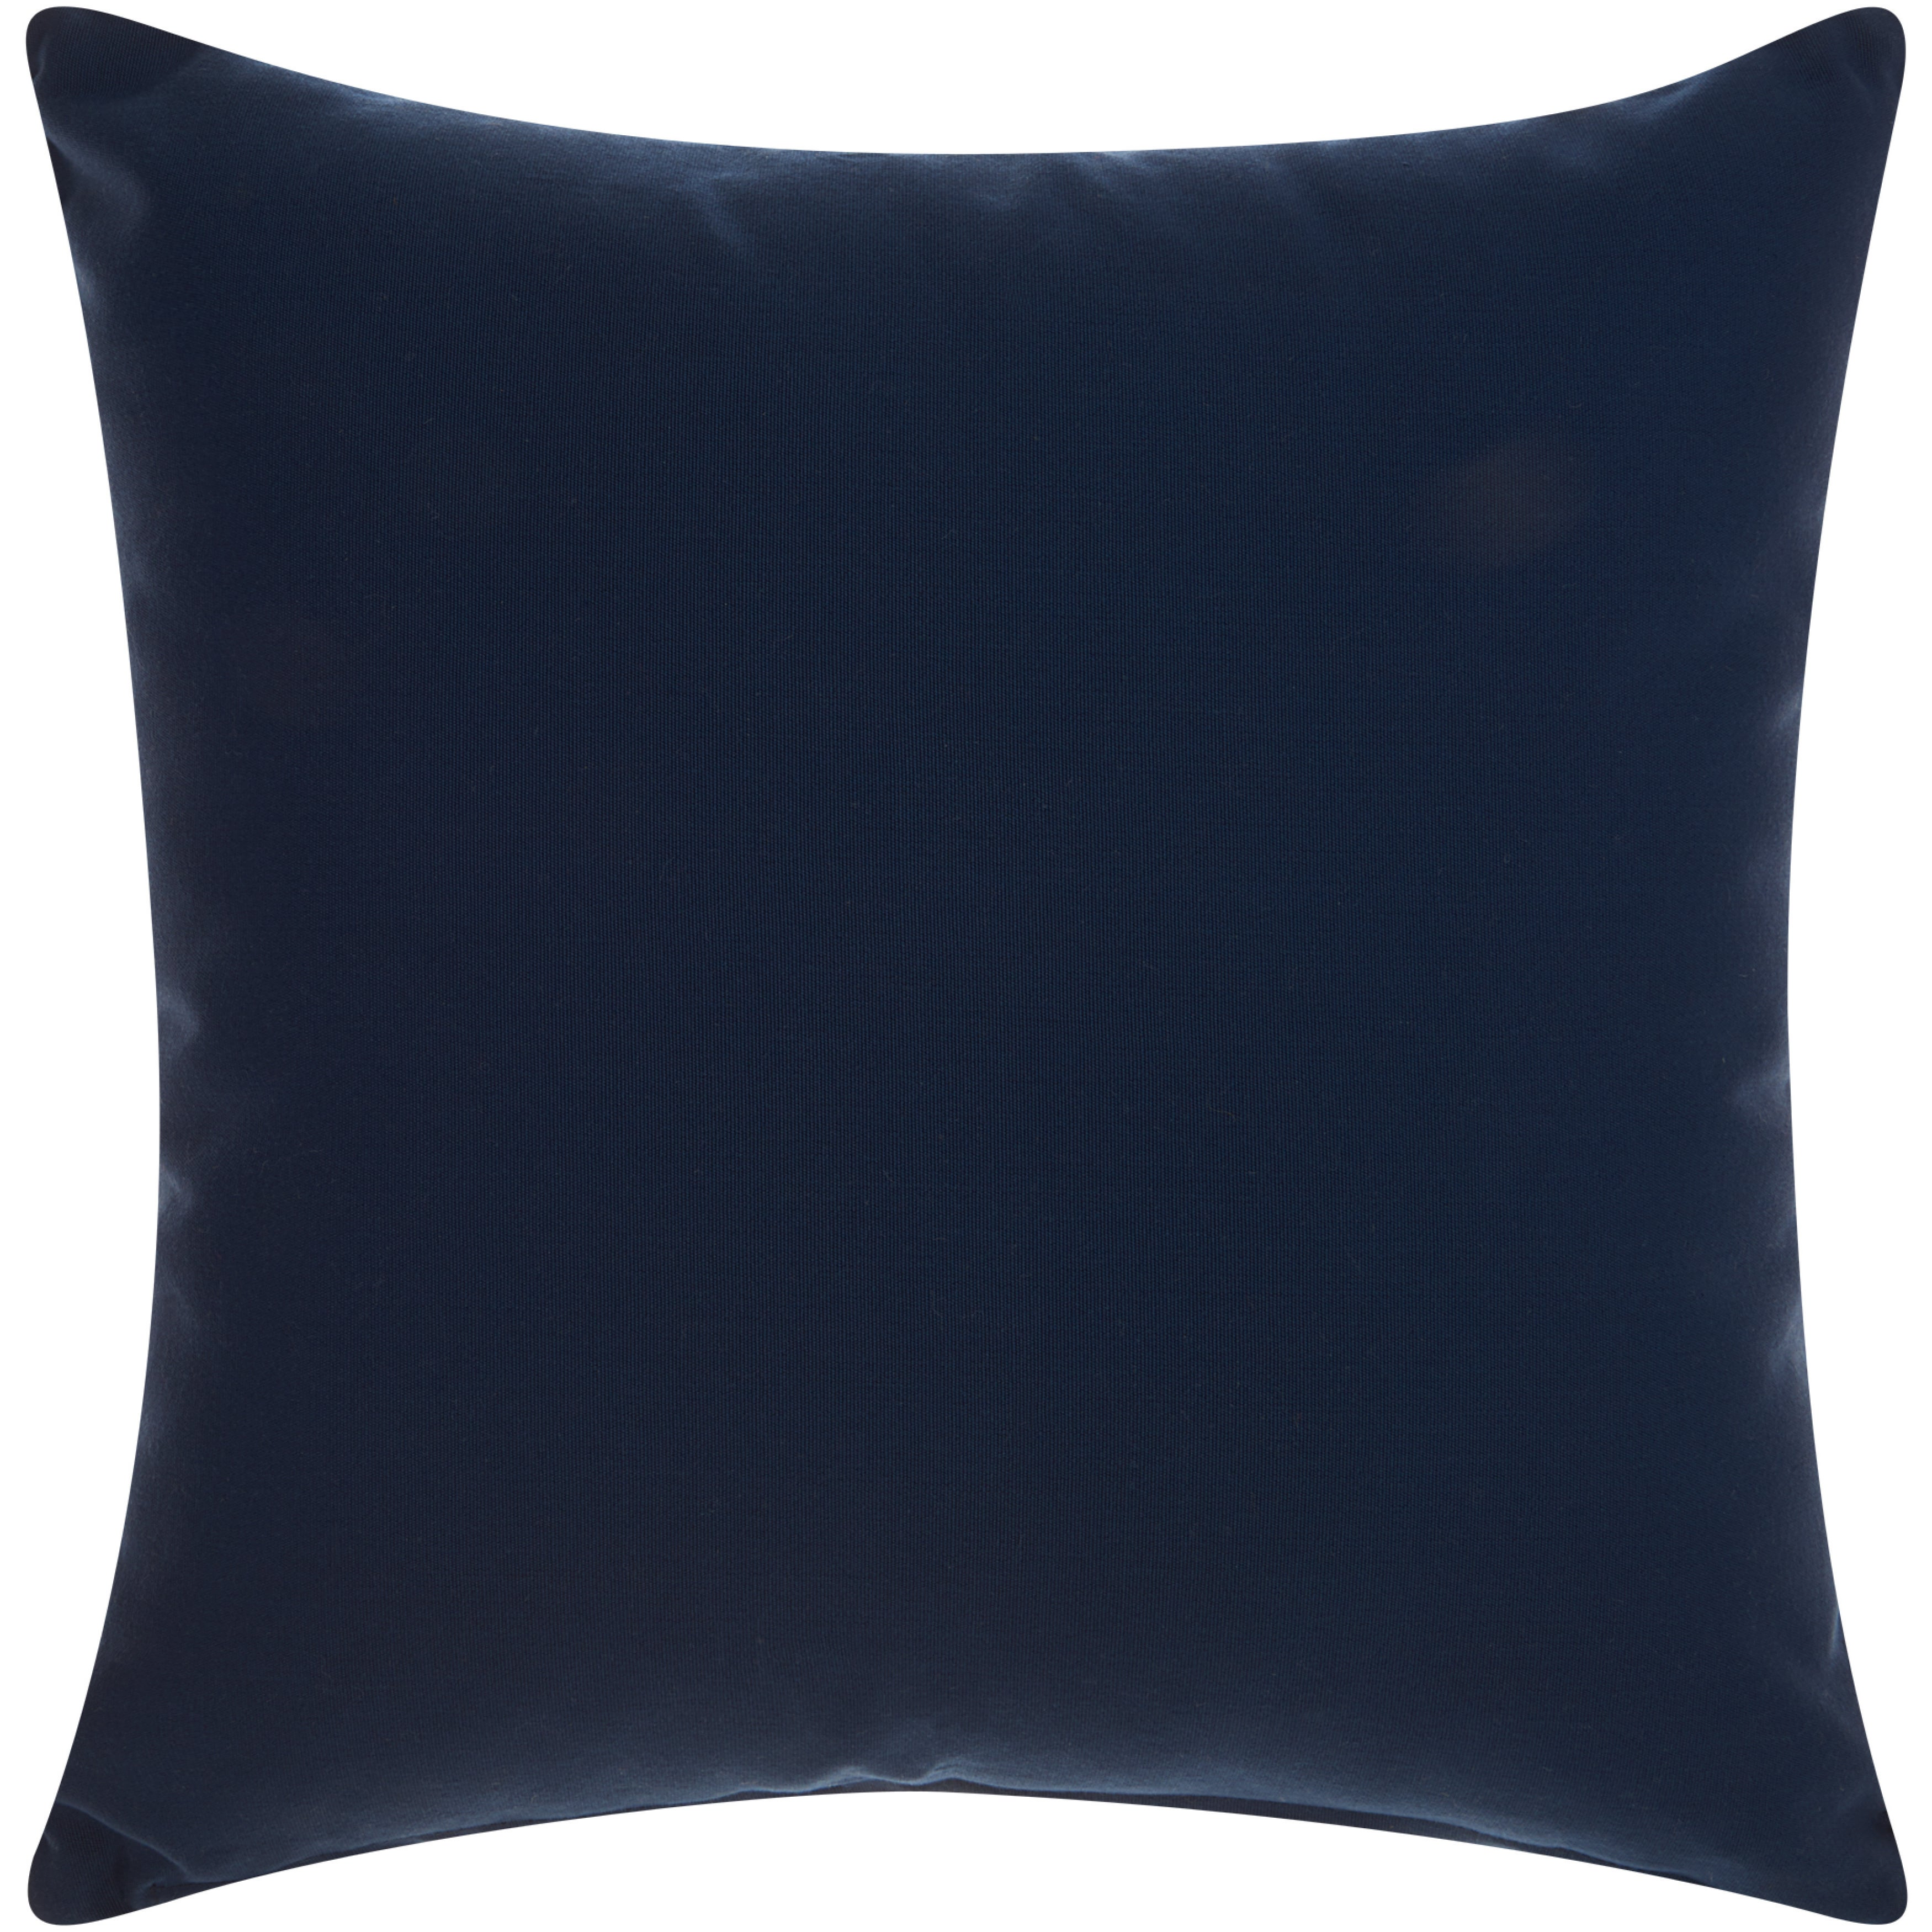 Mina Victory Indoor/ Outdoor Anchor Navy/ White Throw Pillow By Nourison  (18 X 18 Inch)   Free Shipping On Orders Over $45   Overstock.com   18905248